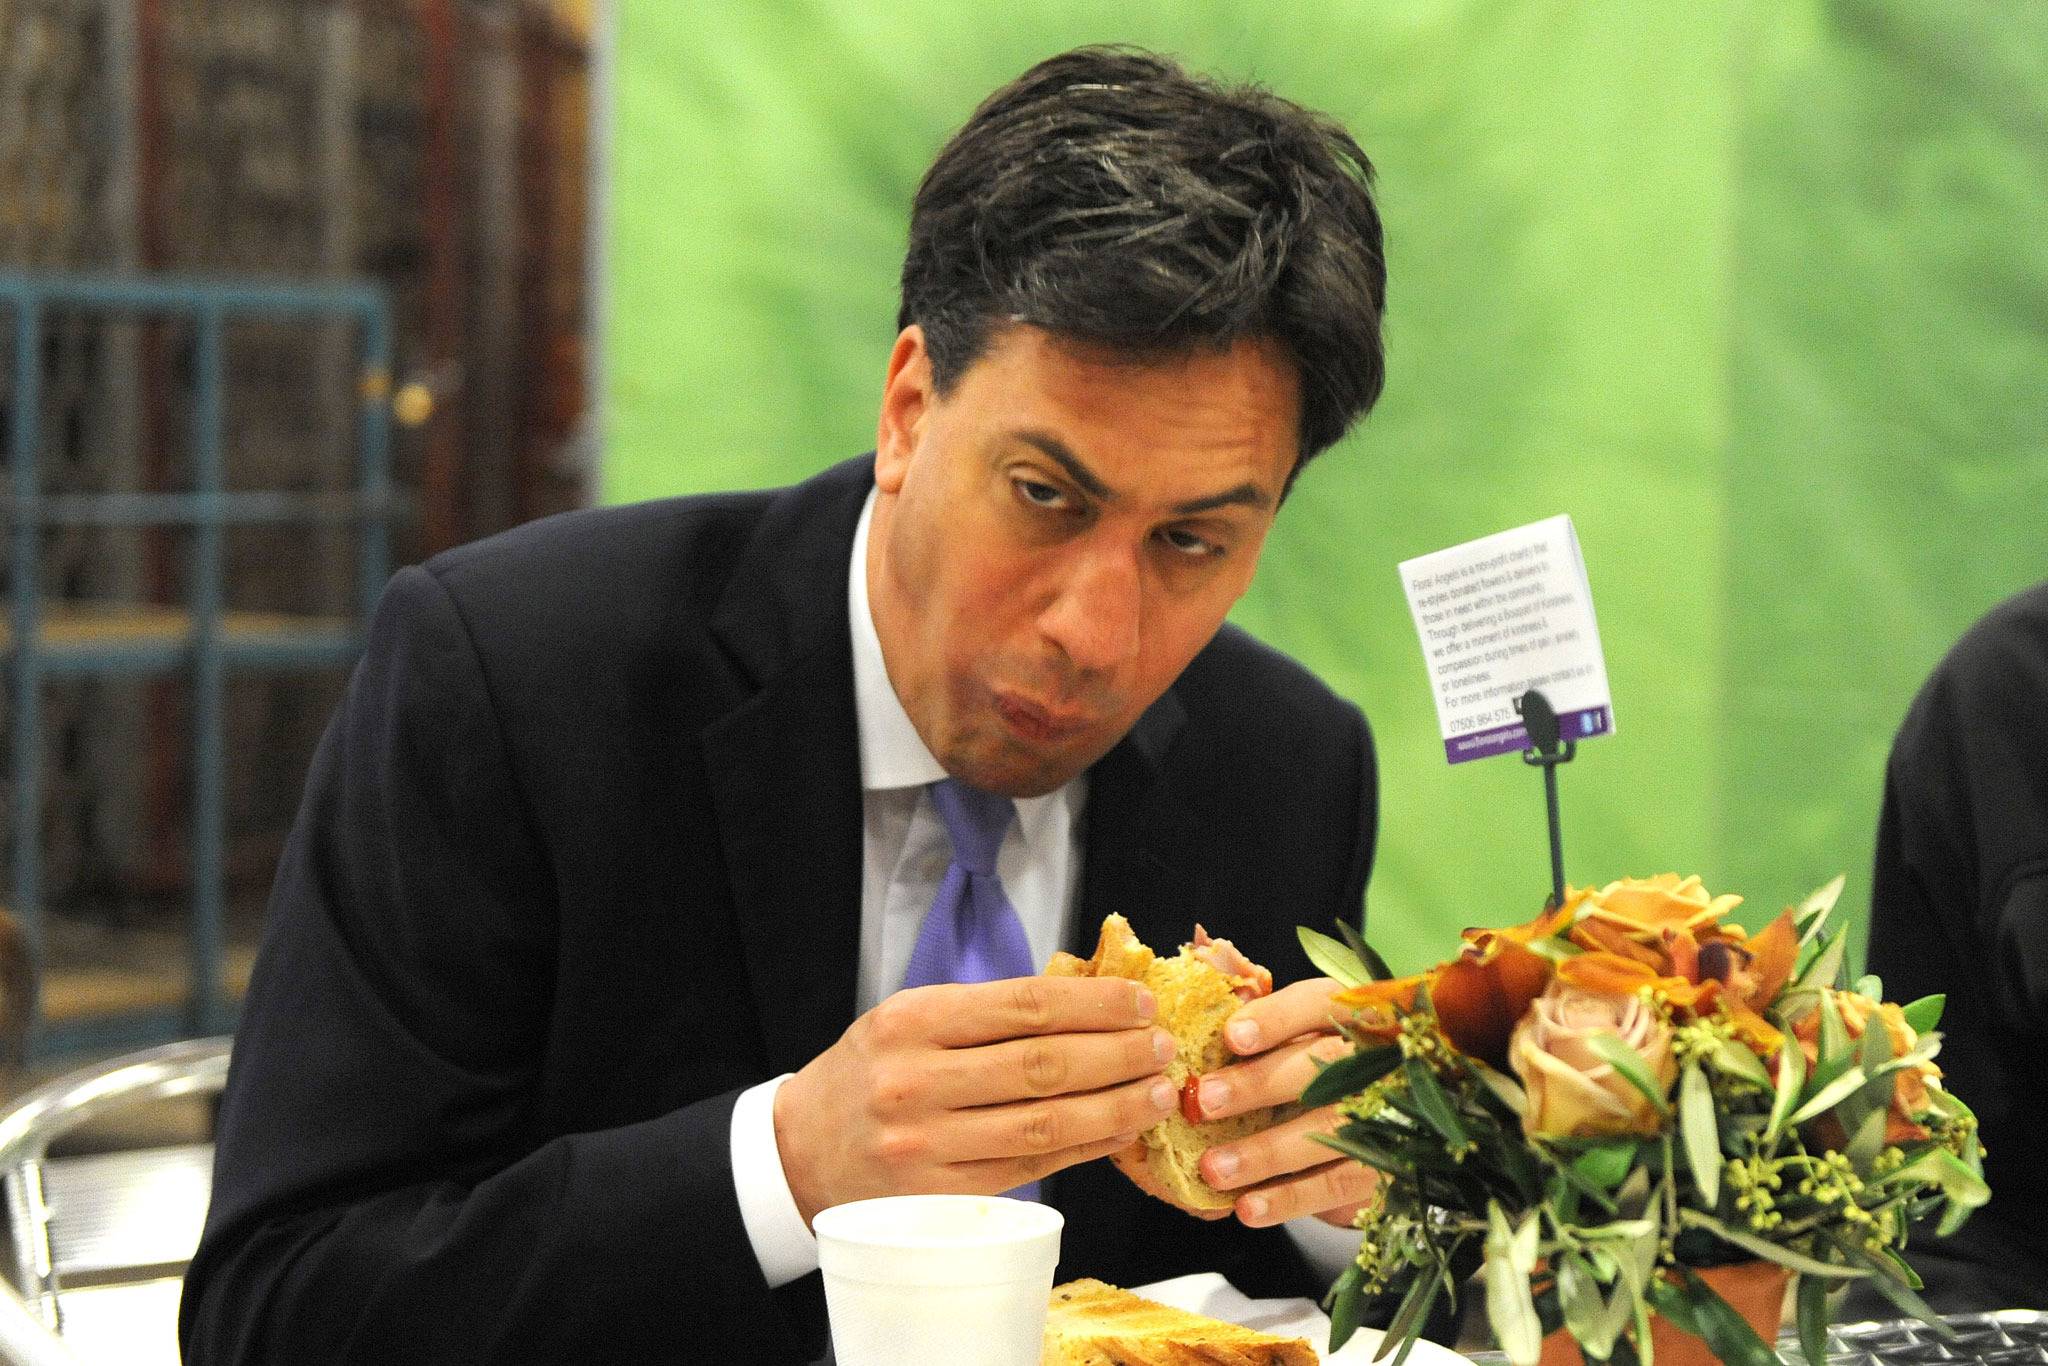 Ed Miliband Fails To Look Normal While Eating Bacon